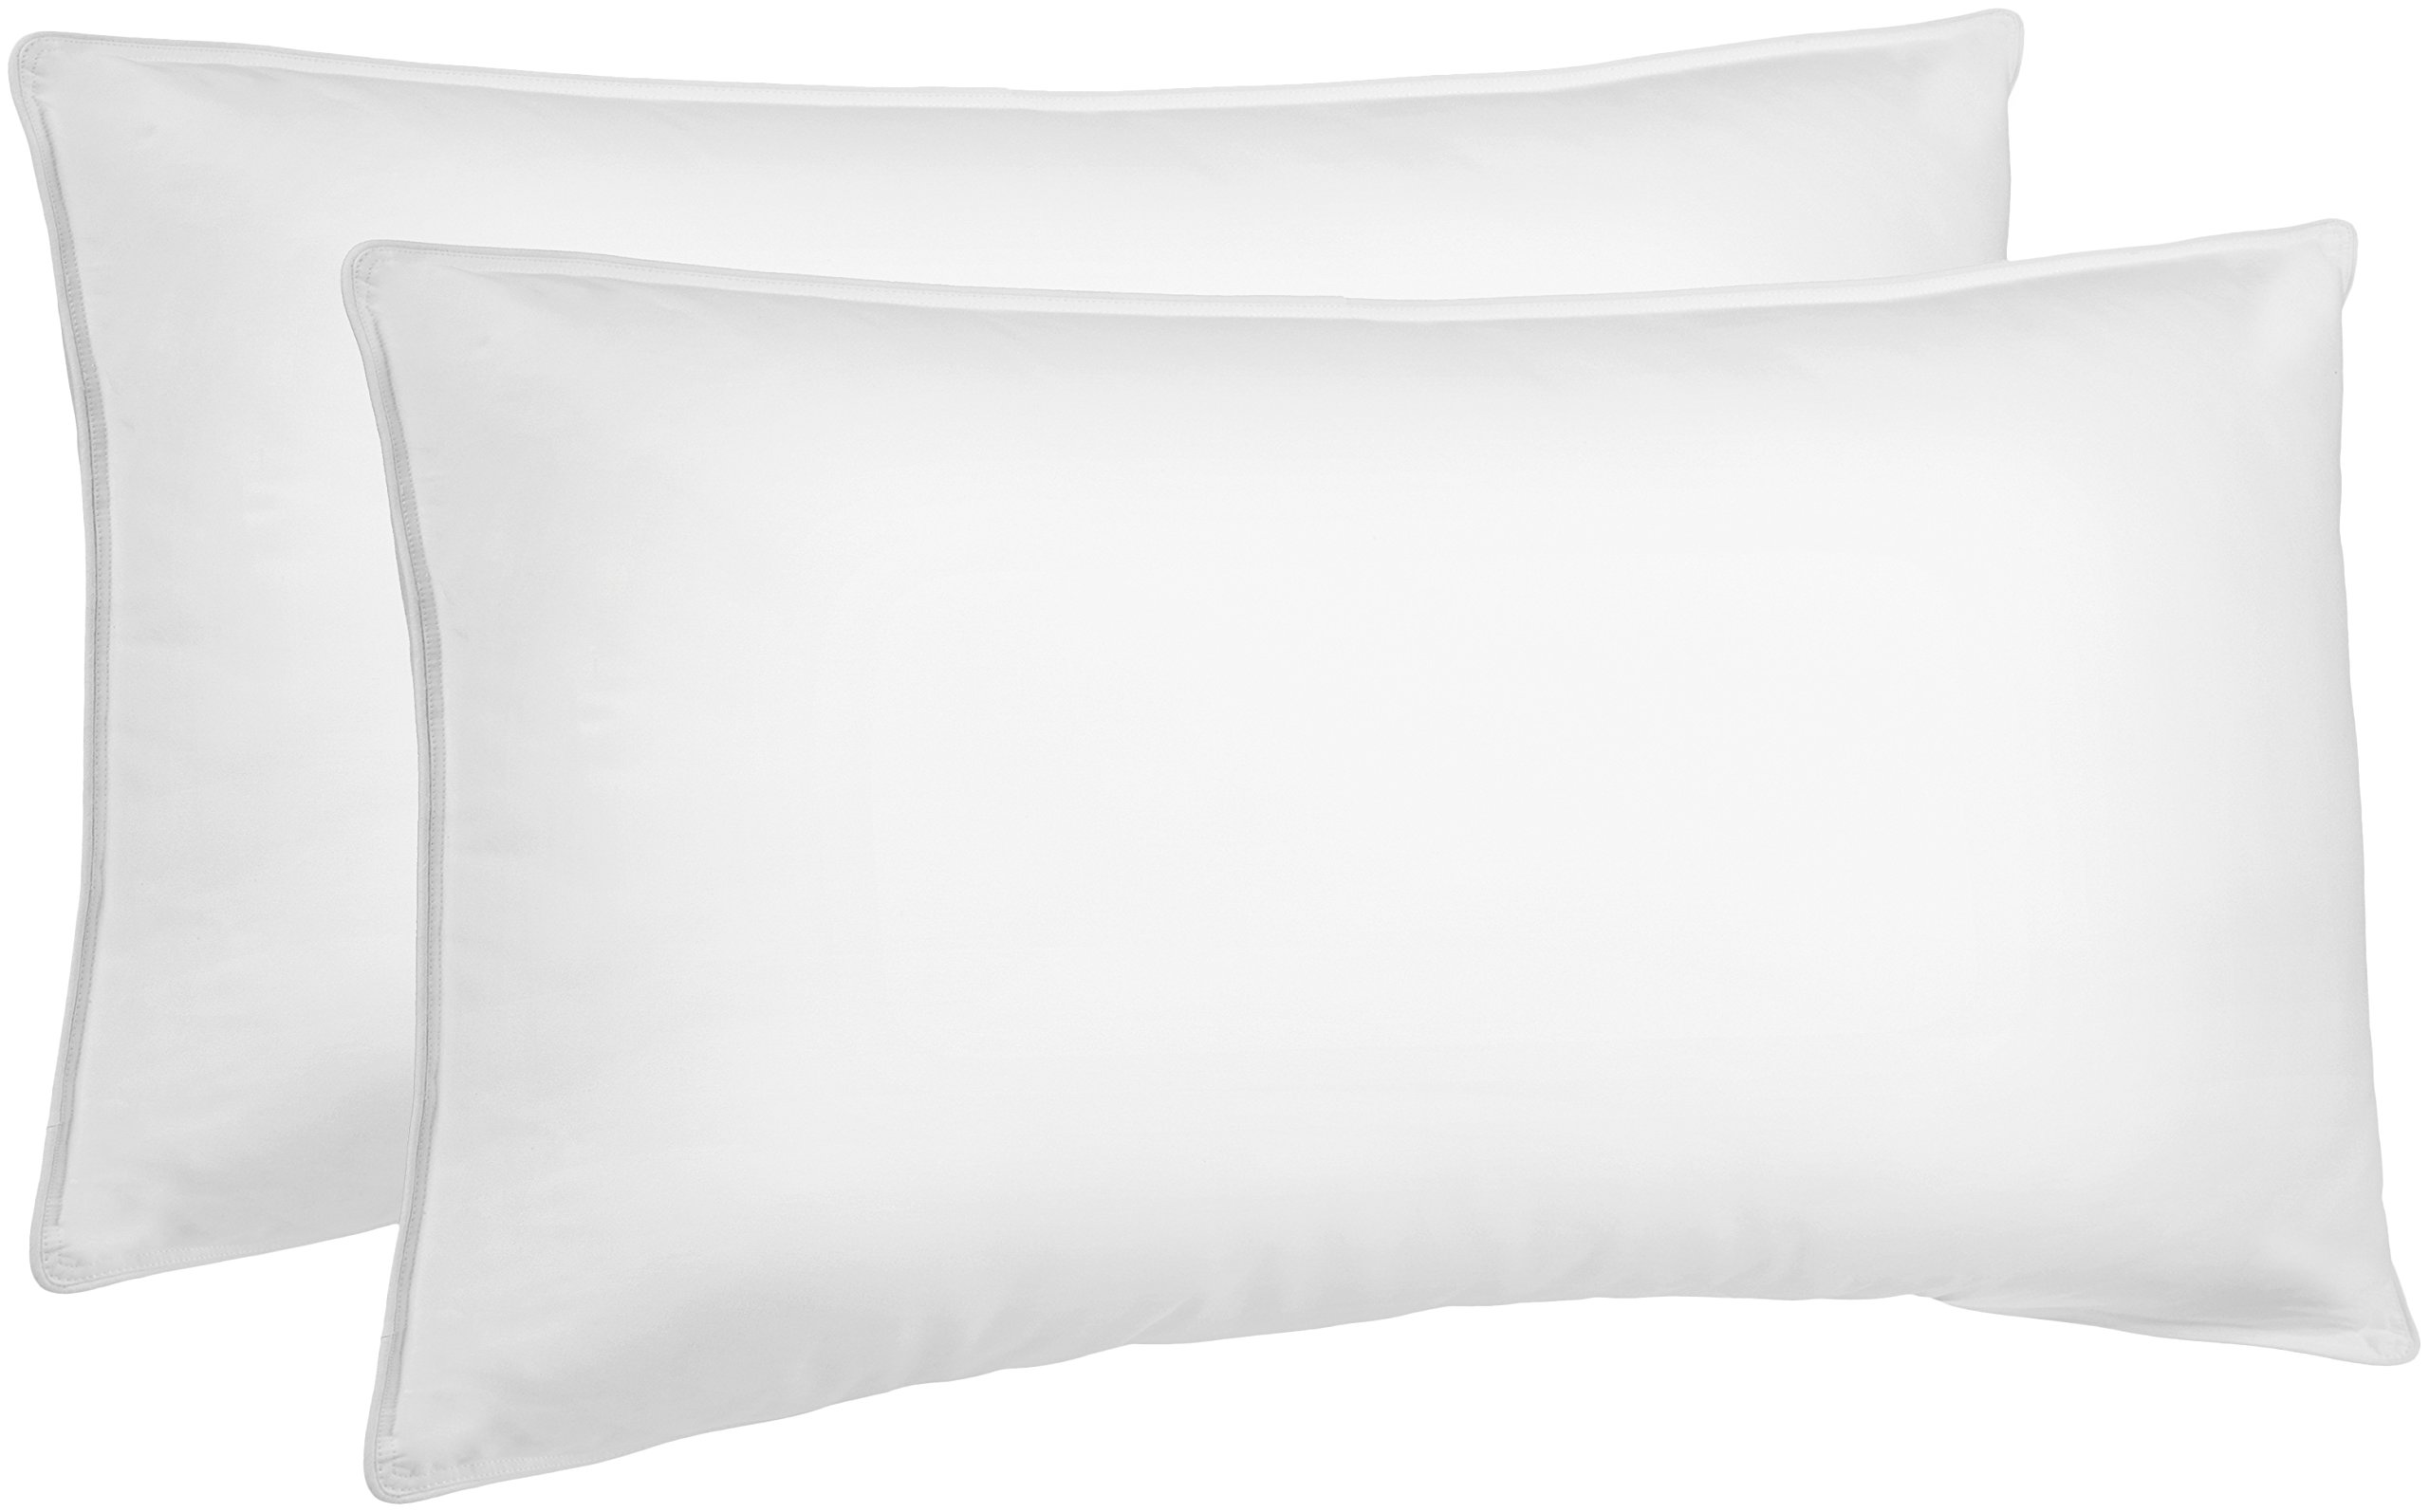 AmazonBasics Down Alternative Bed Pillows for Stomach and Back Sleepers - 2-Pack, Soft Density, King by AmazonBasics